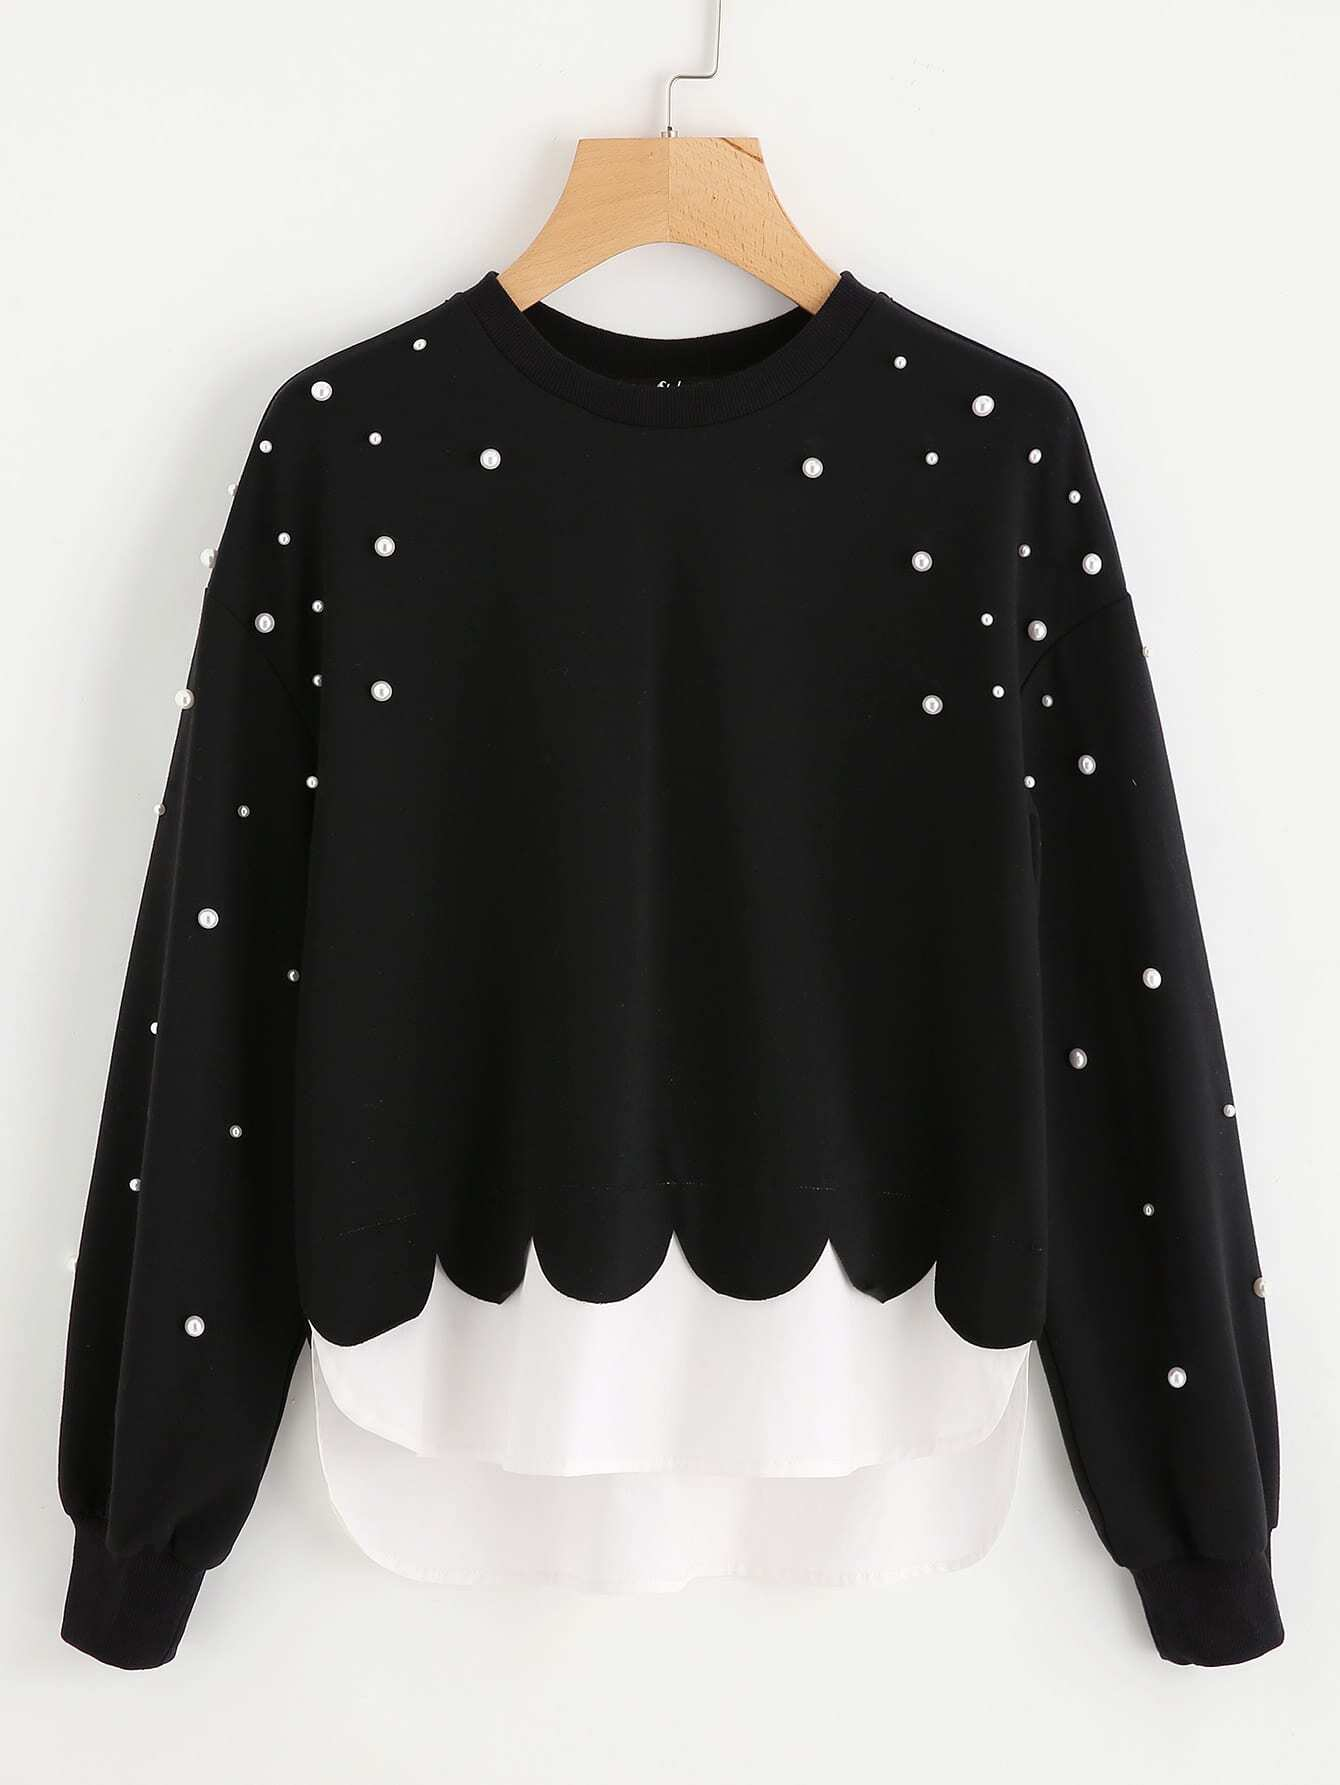 Contrast Hem Pearl Beading Scalloped 2 In 1 Sweatshirt pearl beading frill detail sweatshirt